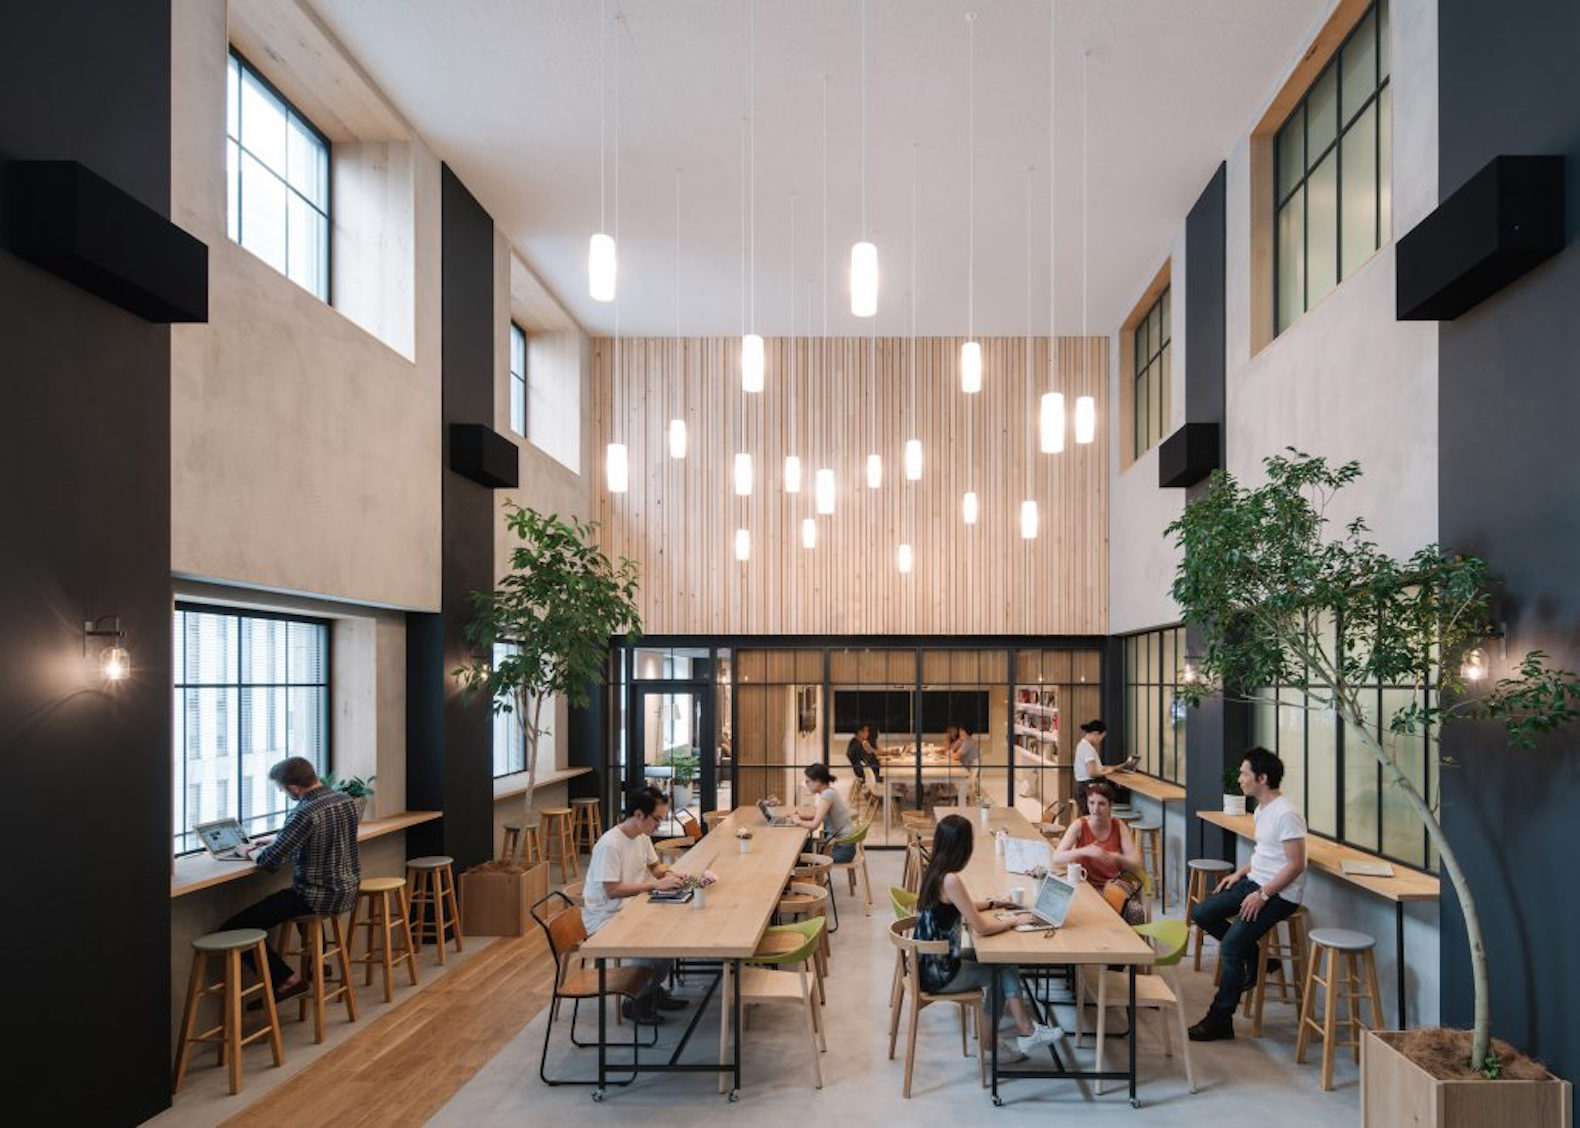 Japanese office design Seating Arrangement Plan Airbnb Launches Naturefilled Tokyo Office That Feels Like Beautiful Cozy Home Inhabitat Japanese Architecture